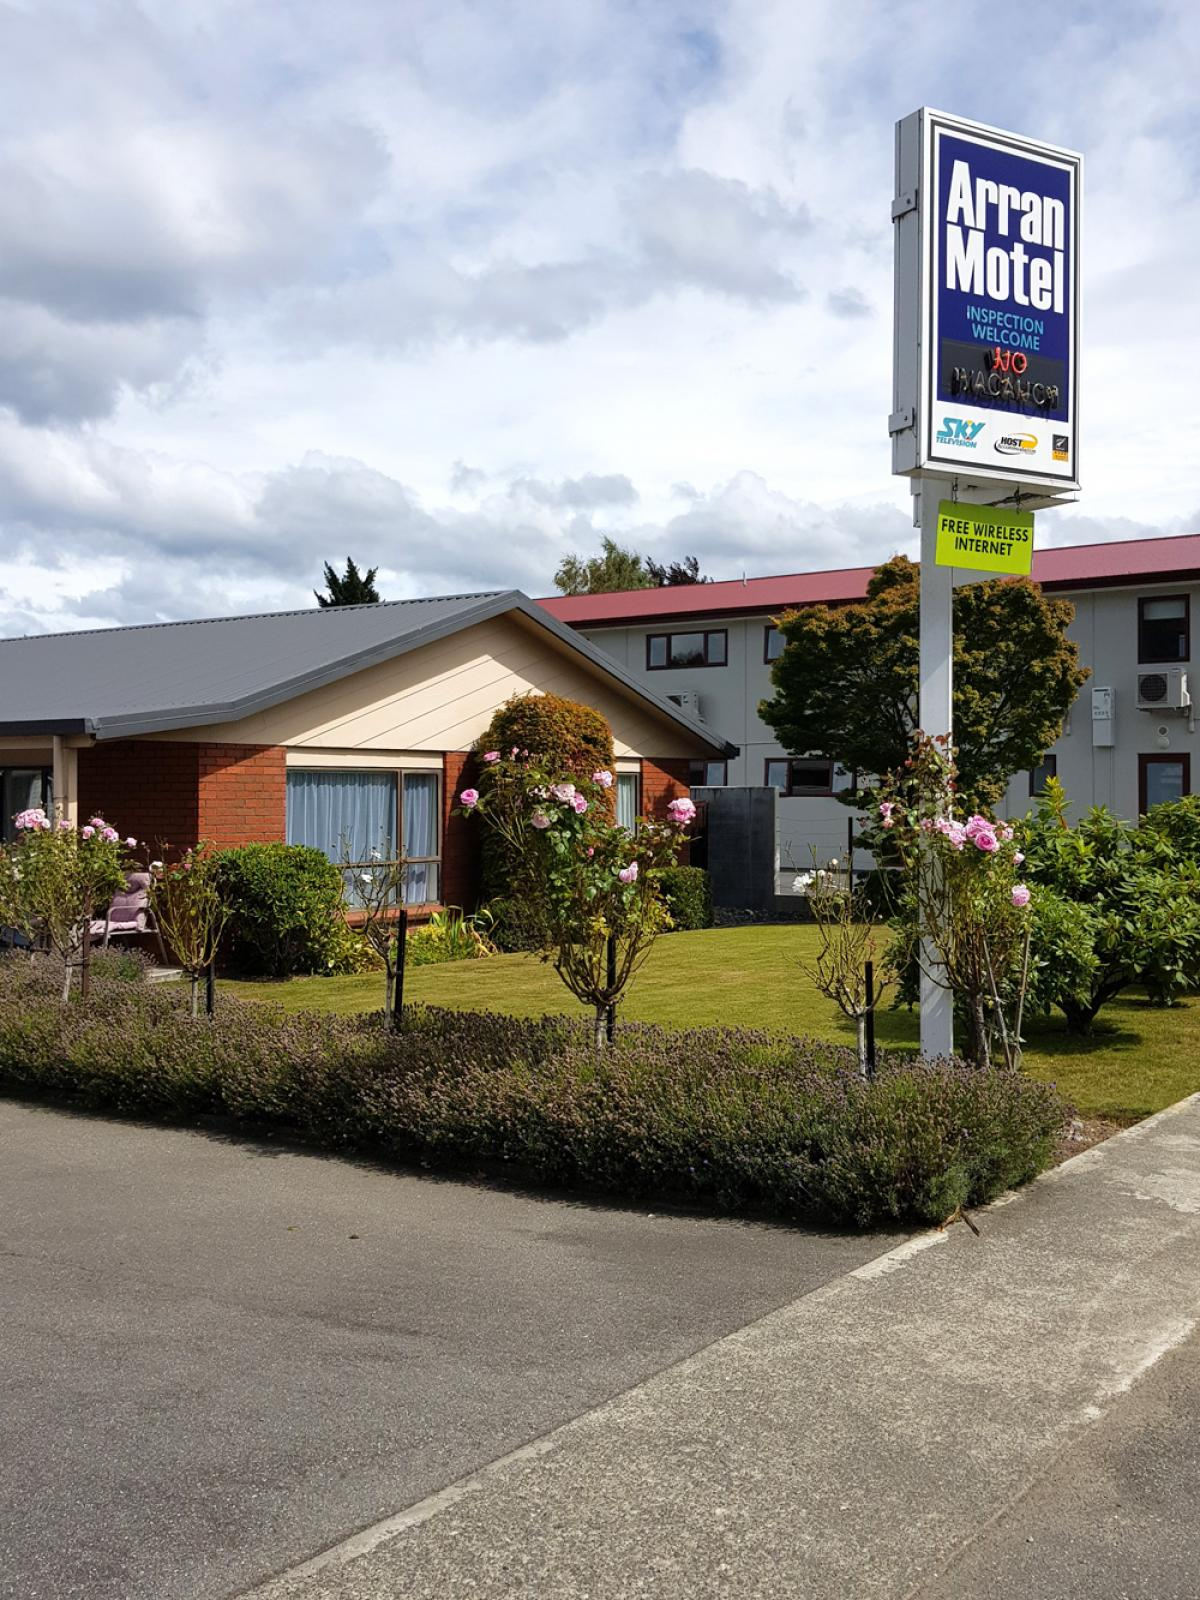 Arran Motel - 64 Quintin Drive, Te Anau, New Zealand